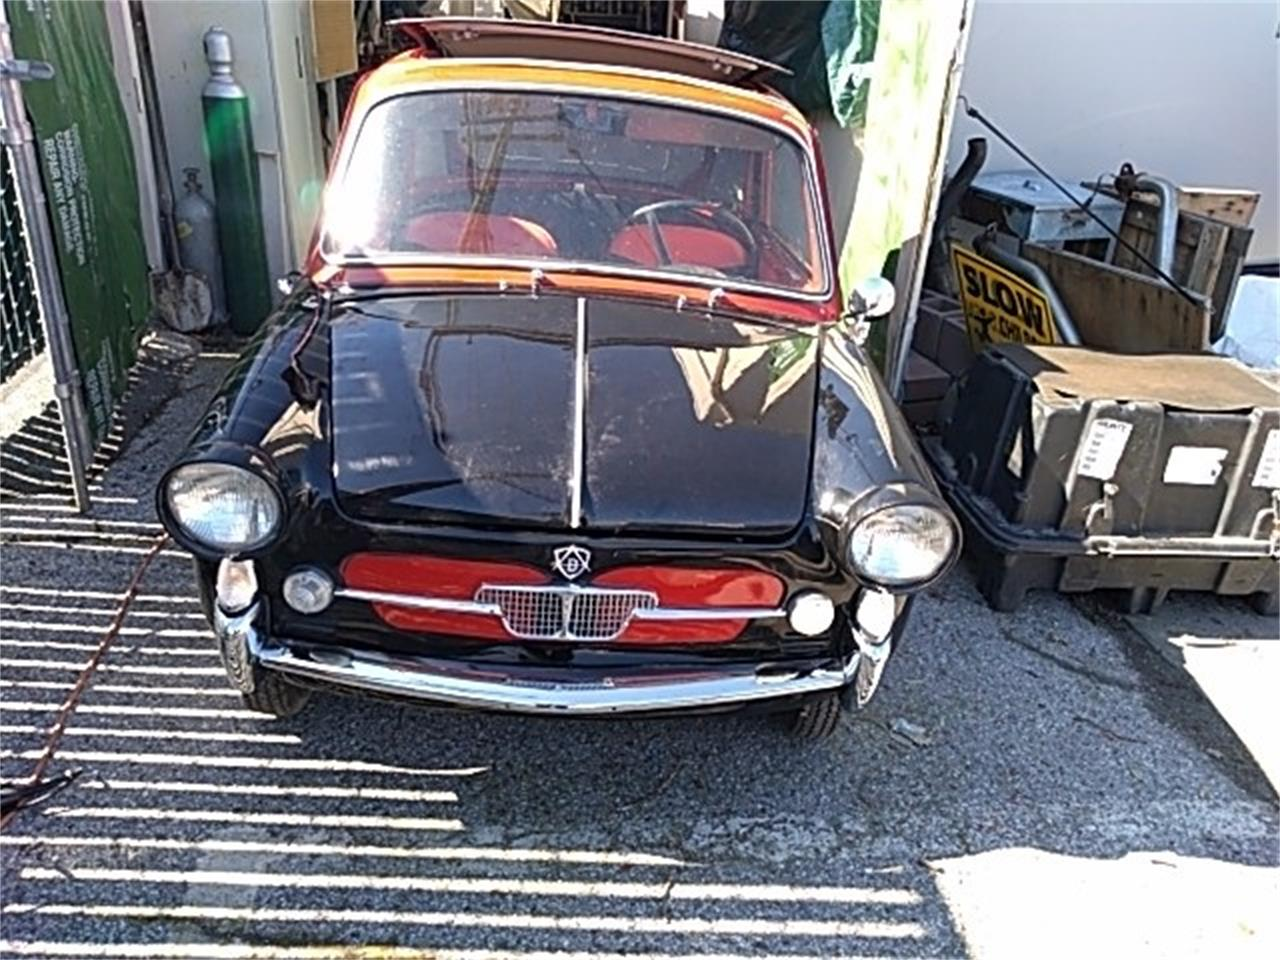 1959 Fiat 500L for sale in Foster City, CA – photo 2